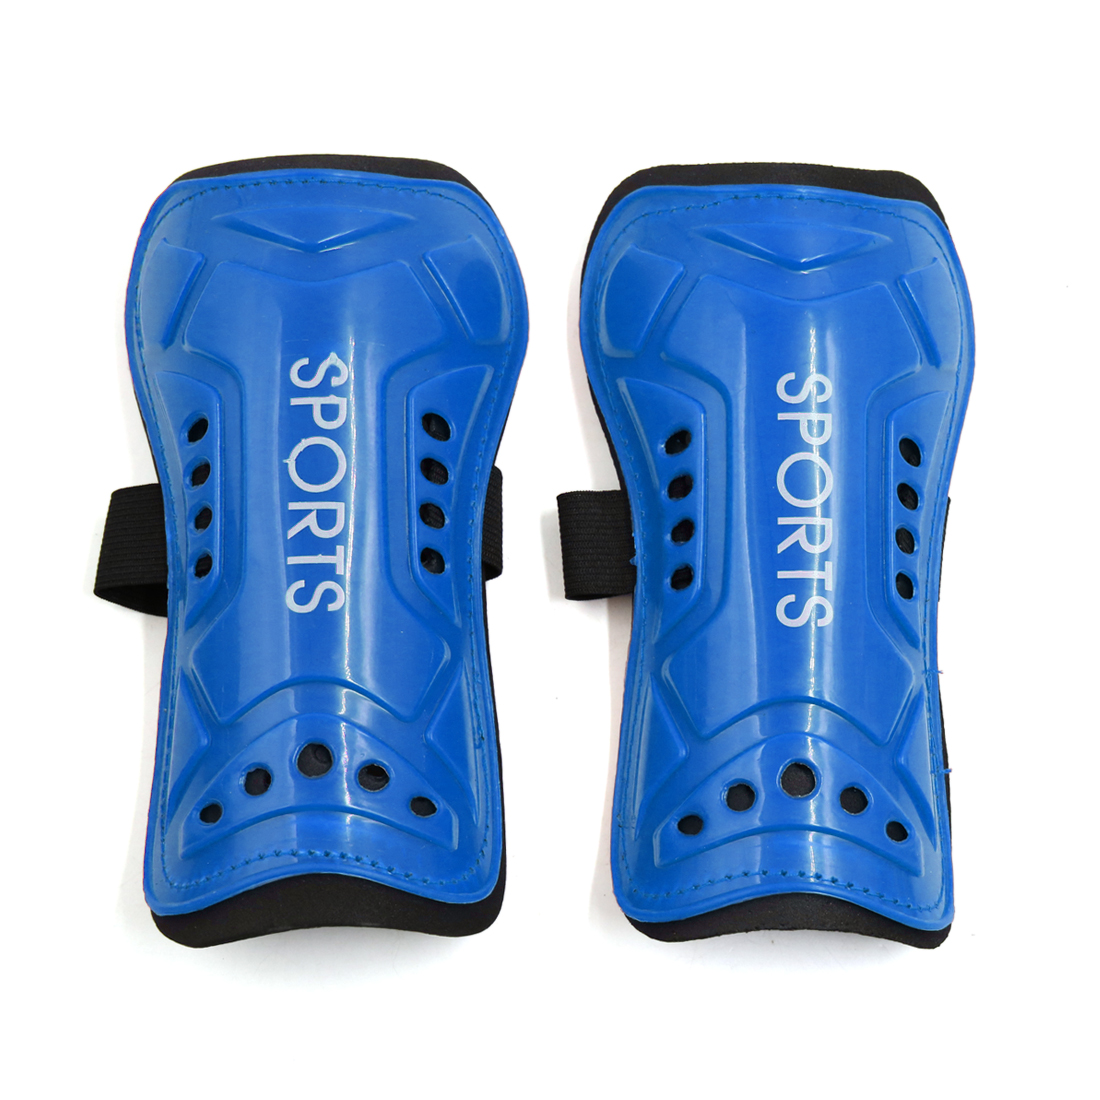 2 Pcs Kids Football Shin Pads Soccer Guards Sports Leg Protector Protective Gear Blue